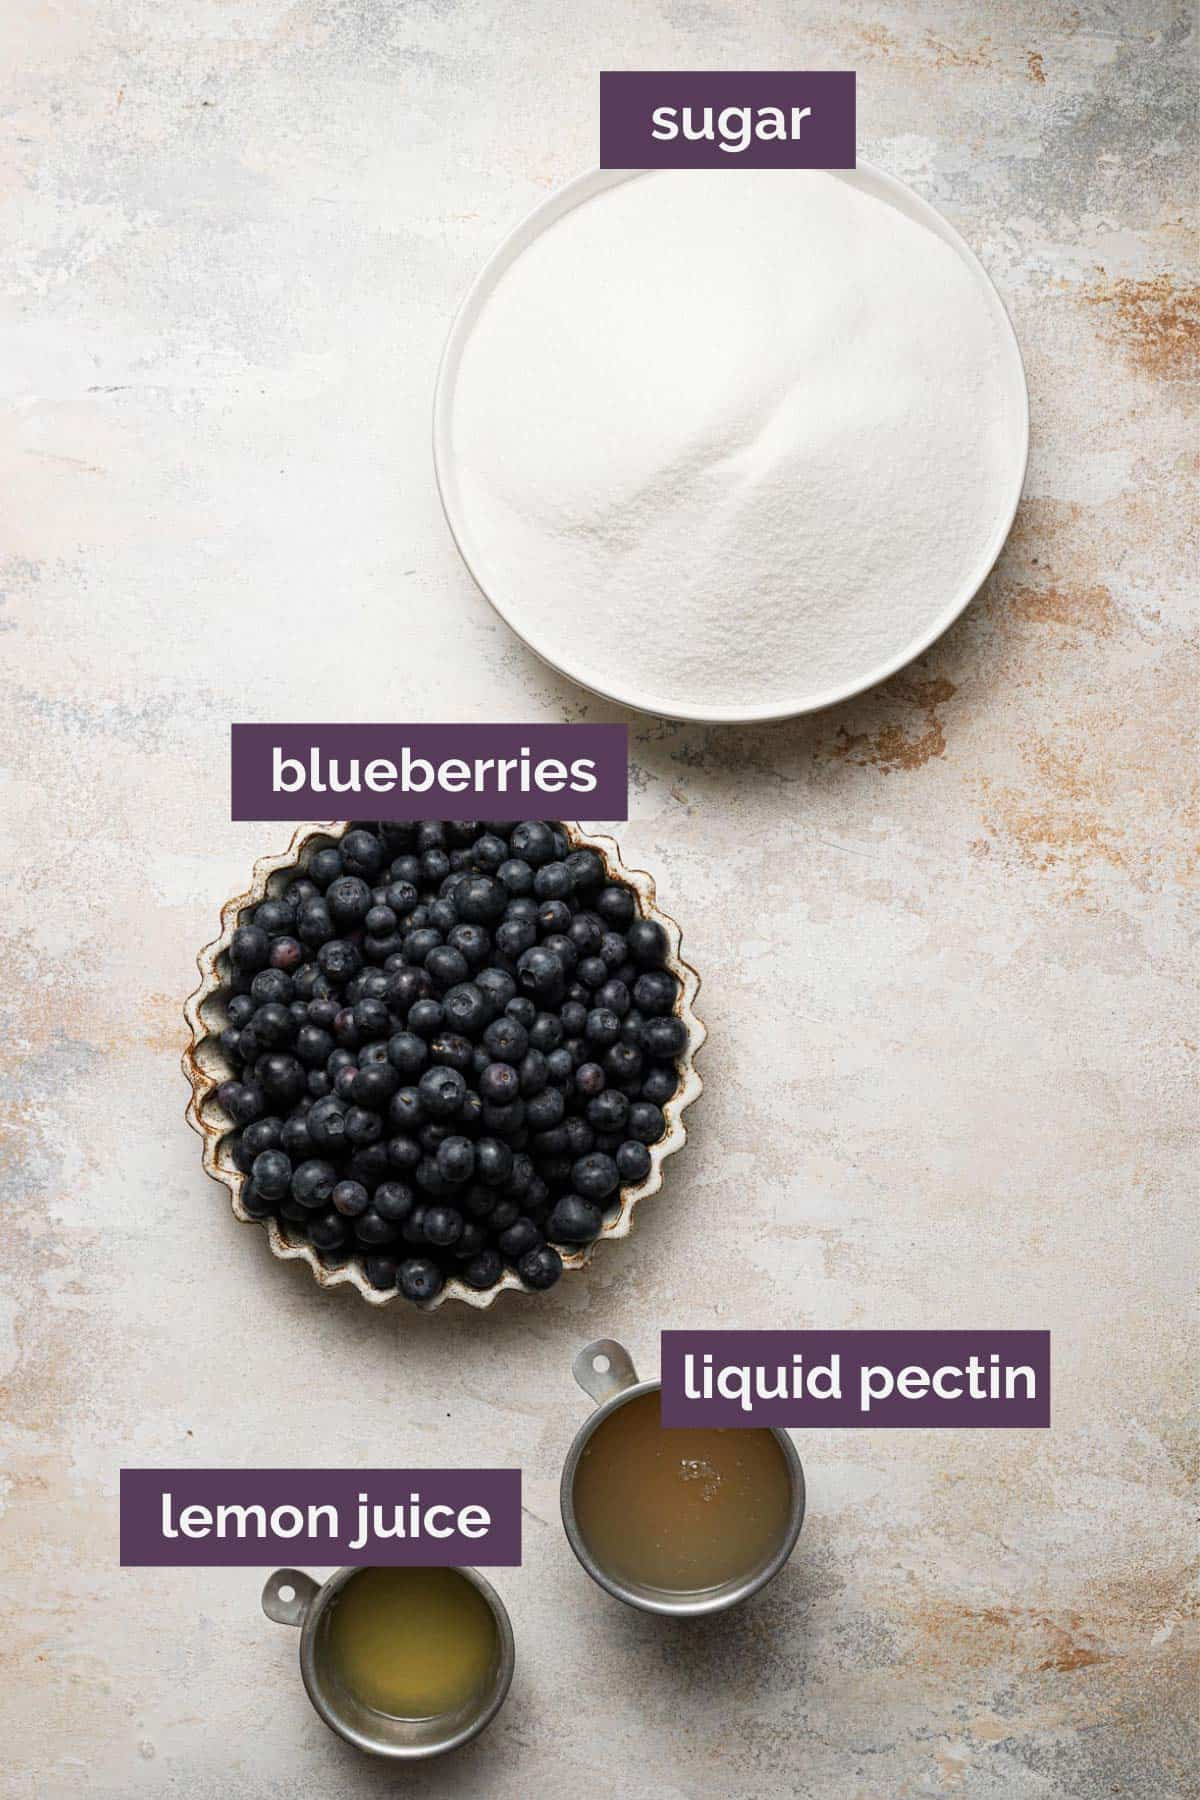 Ingredients for blueberry jam labeled with a purple label telling what each ingredient is.